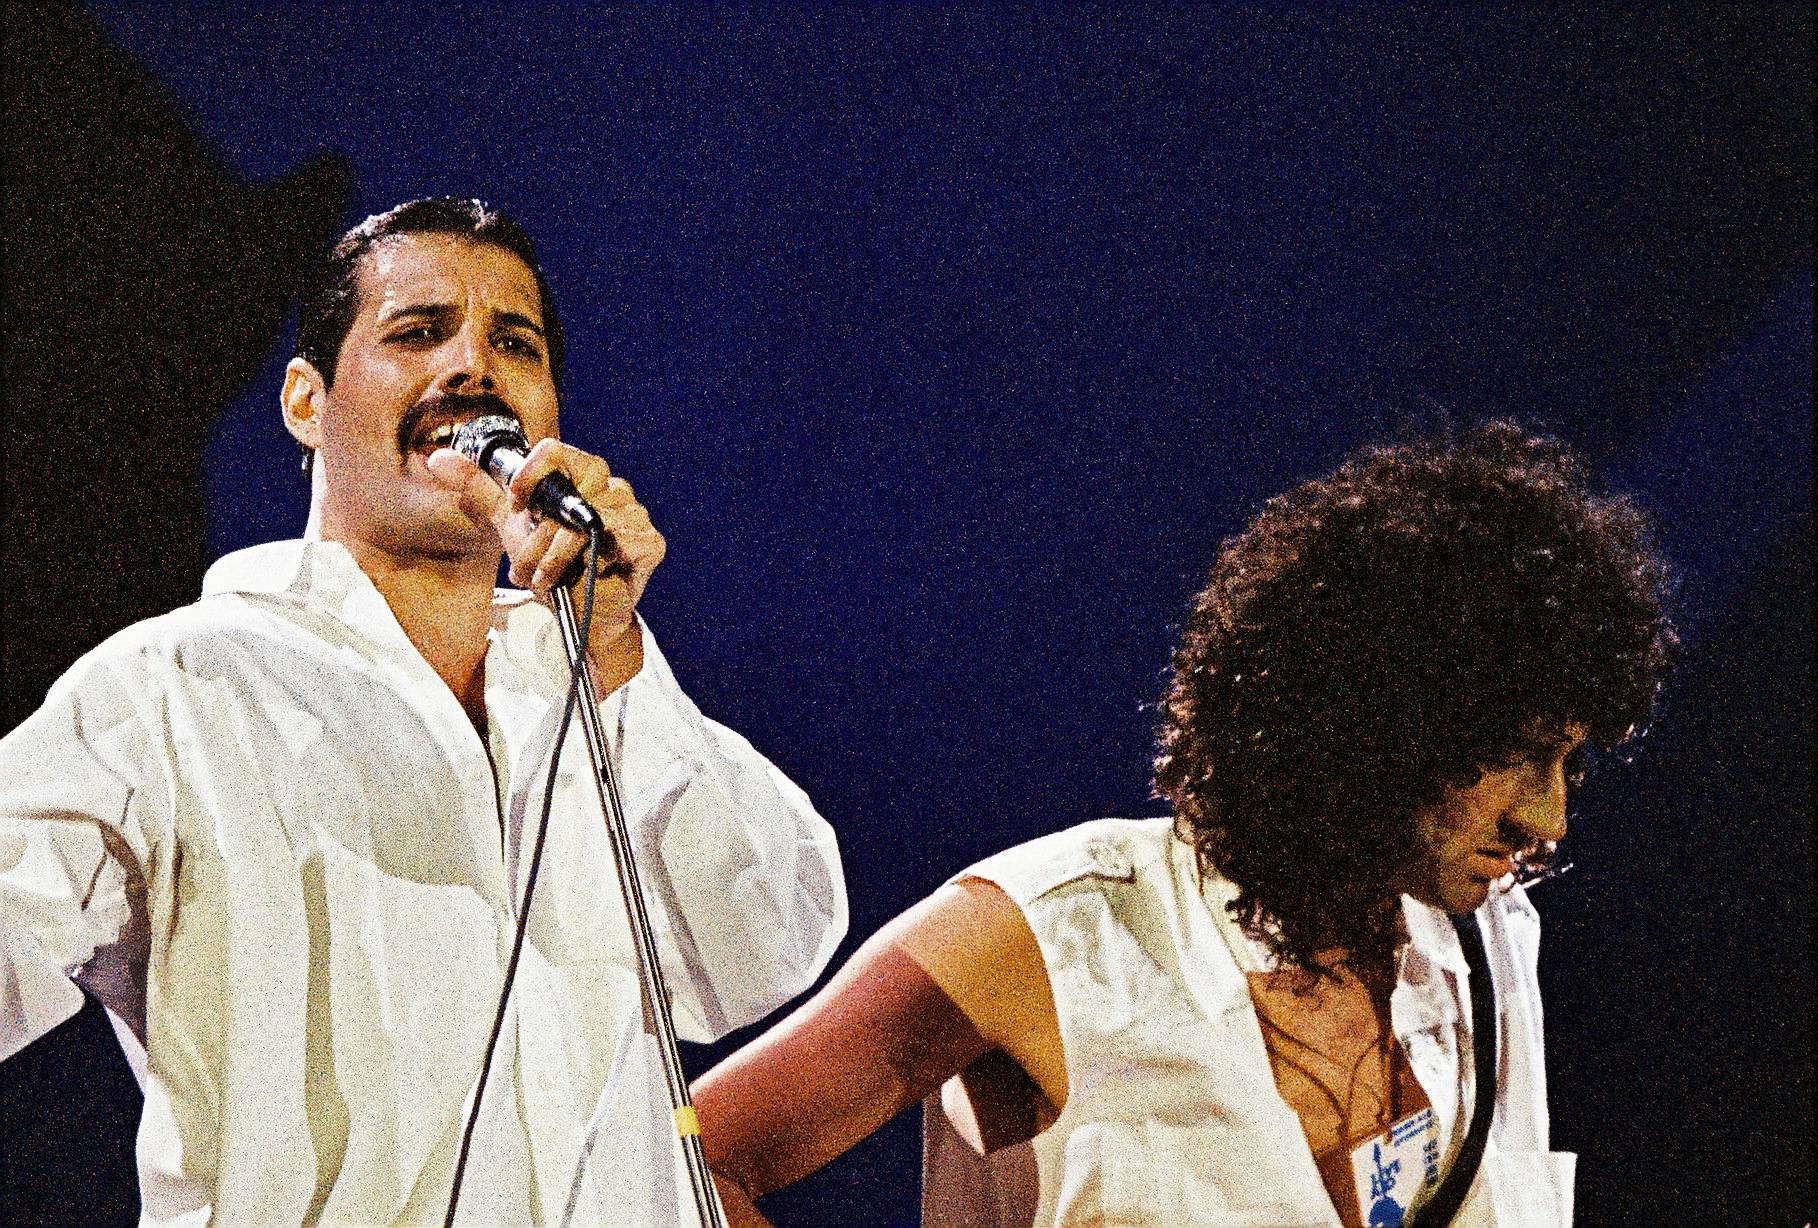 Queen Unearth Live Aid Recordings for 'Bohemian Rhapsody' Soundtrack